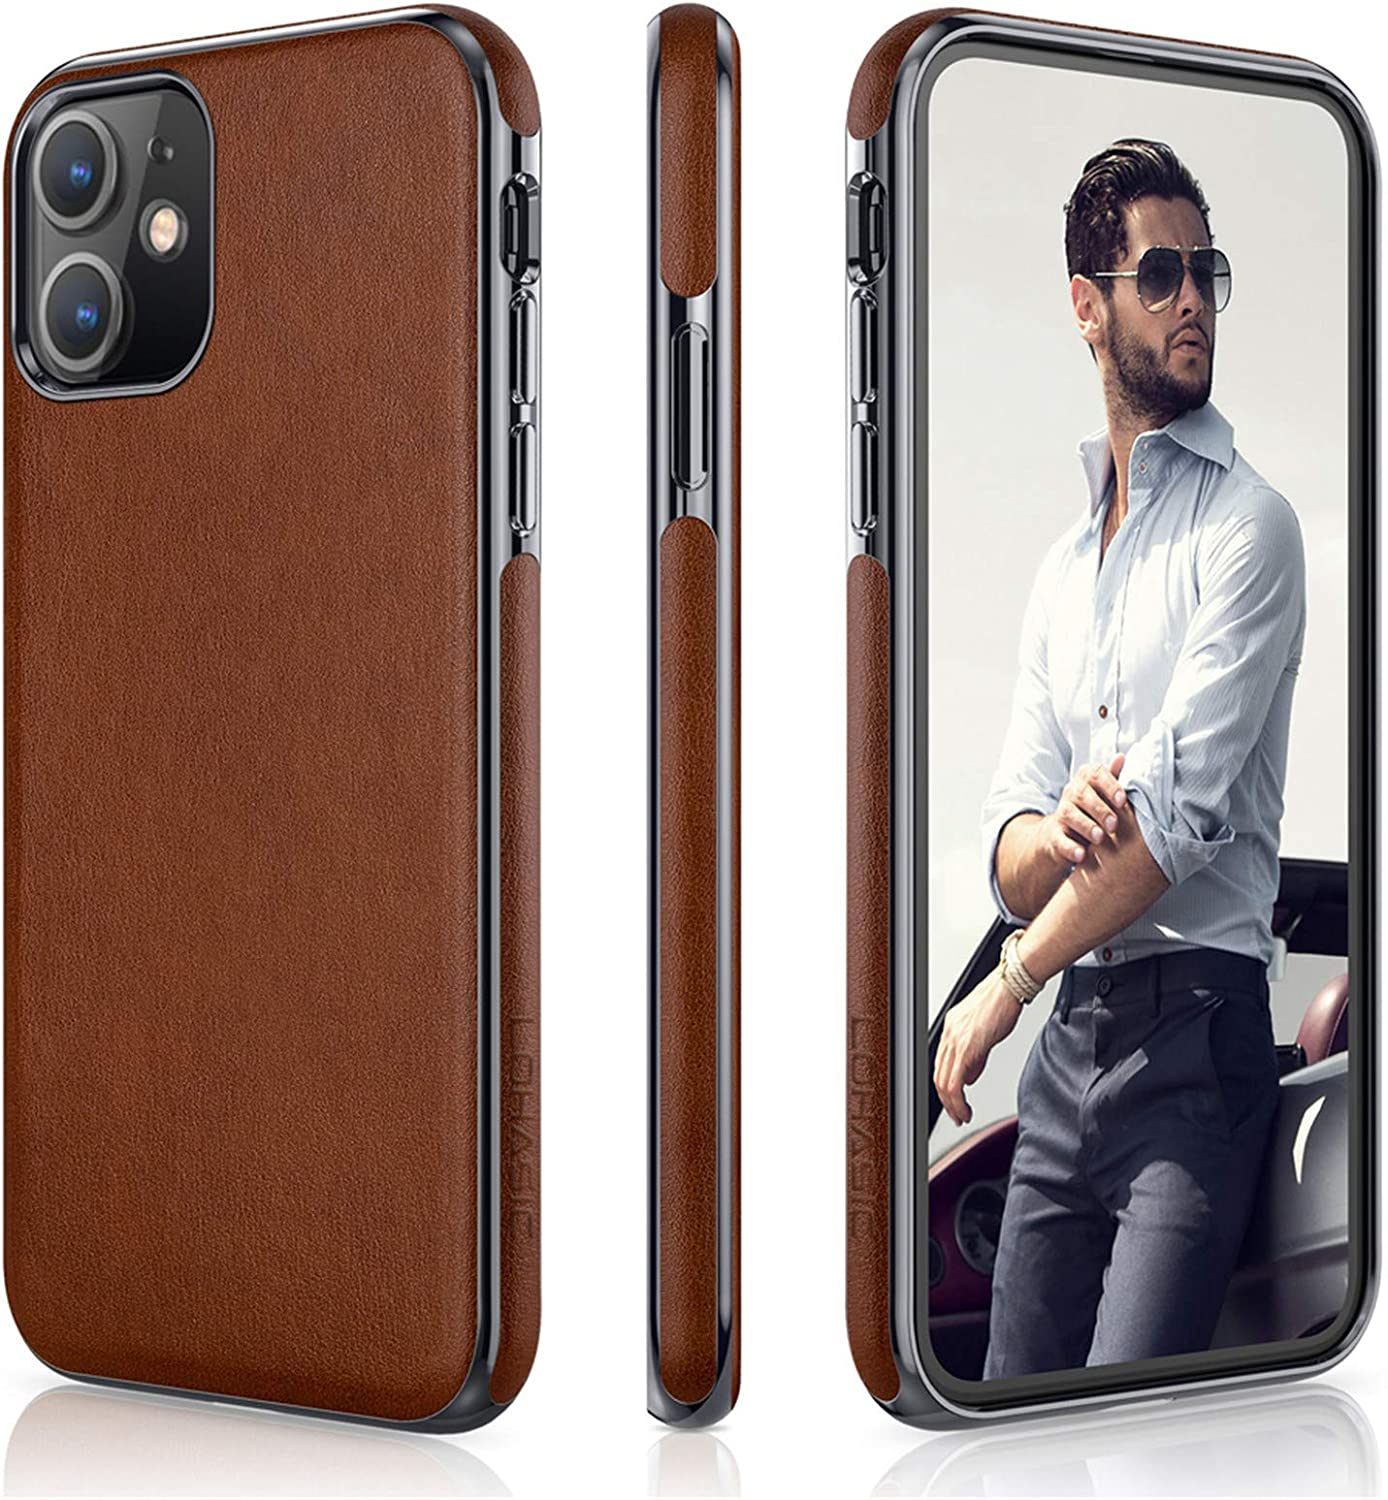 LOHASIC for iPhone 11 Case, Slim Business PU Leather Thin Elegant TPU Bumper Soft Anti-Slip Scratch Resistant Full Body Protective Phone Cover Cases Compatible with iPhone 11(2019) 6.1